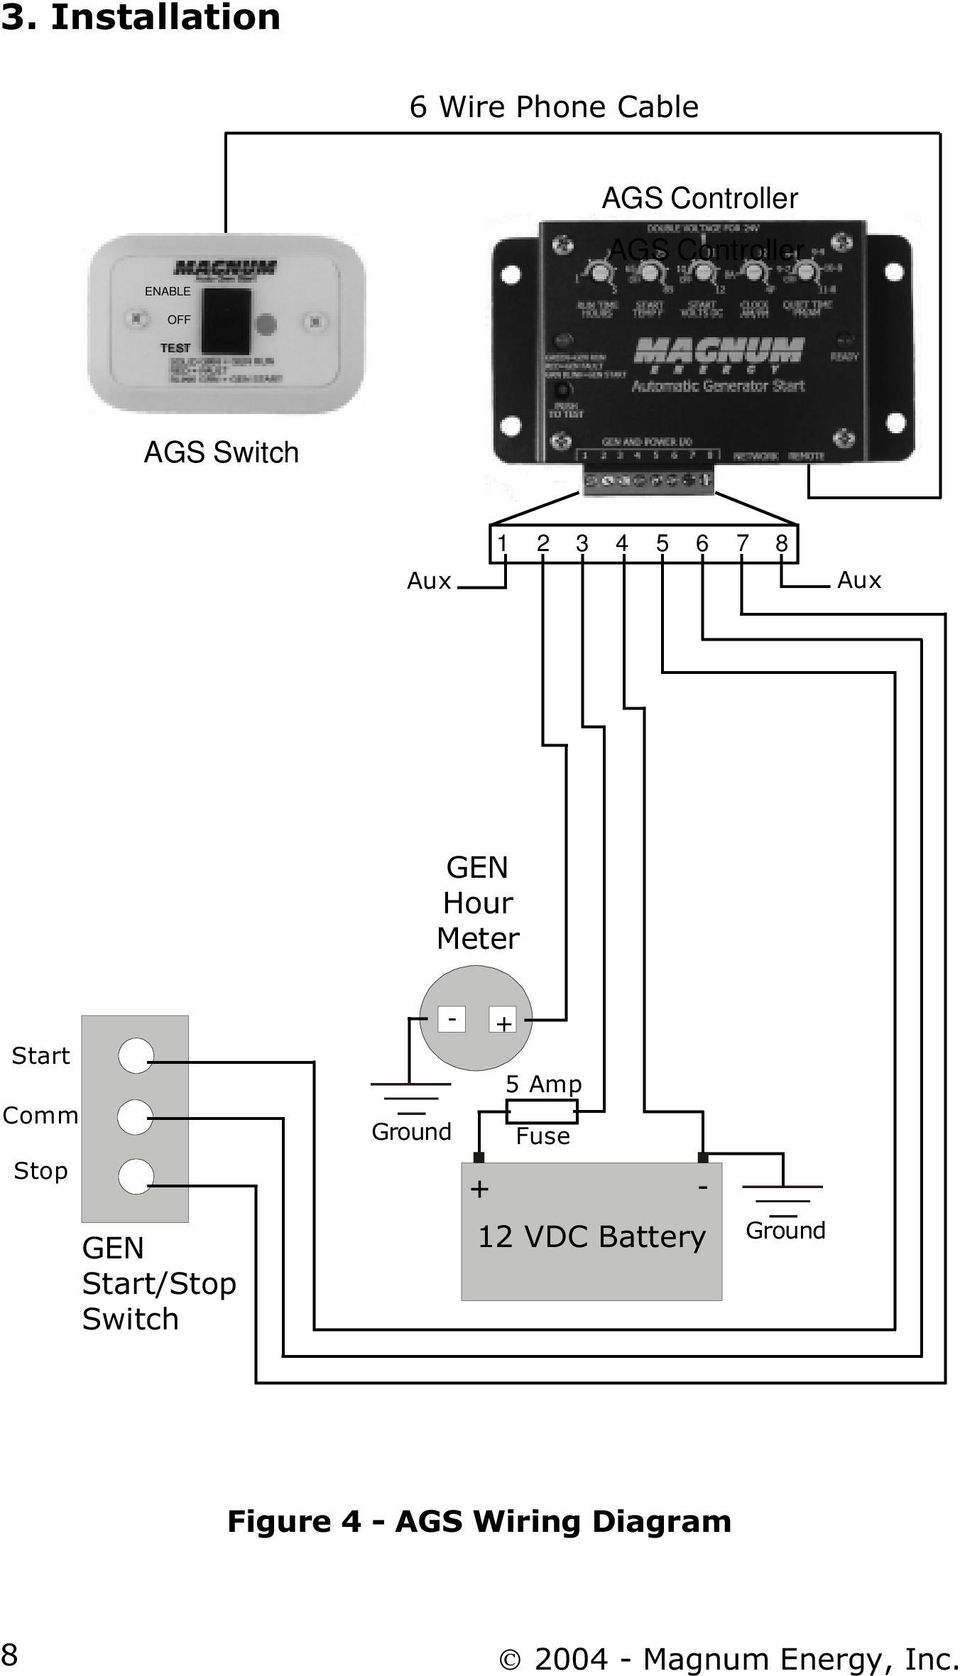 Me Ags Auto Gen Start Stand Alone System For Coach Generators 12 Vdc Wiring Diagrams Comm Stop Switch 5 Amp Ground Fuse